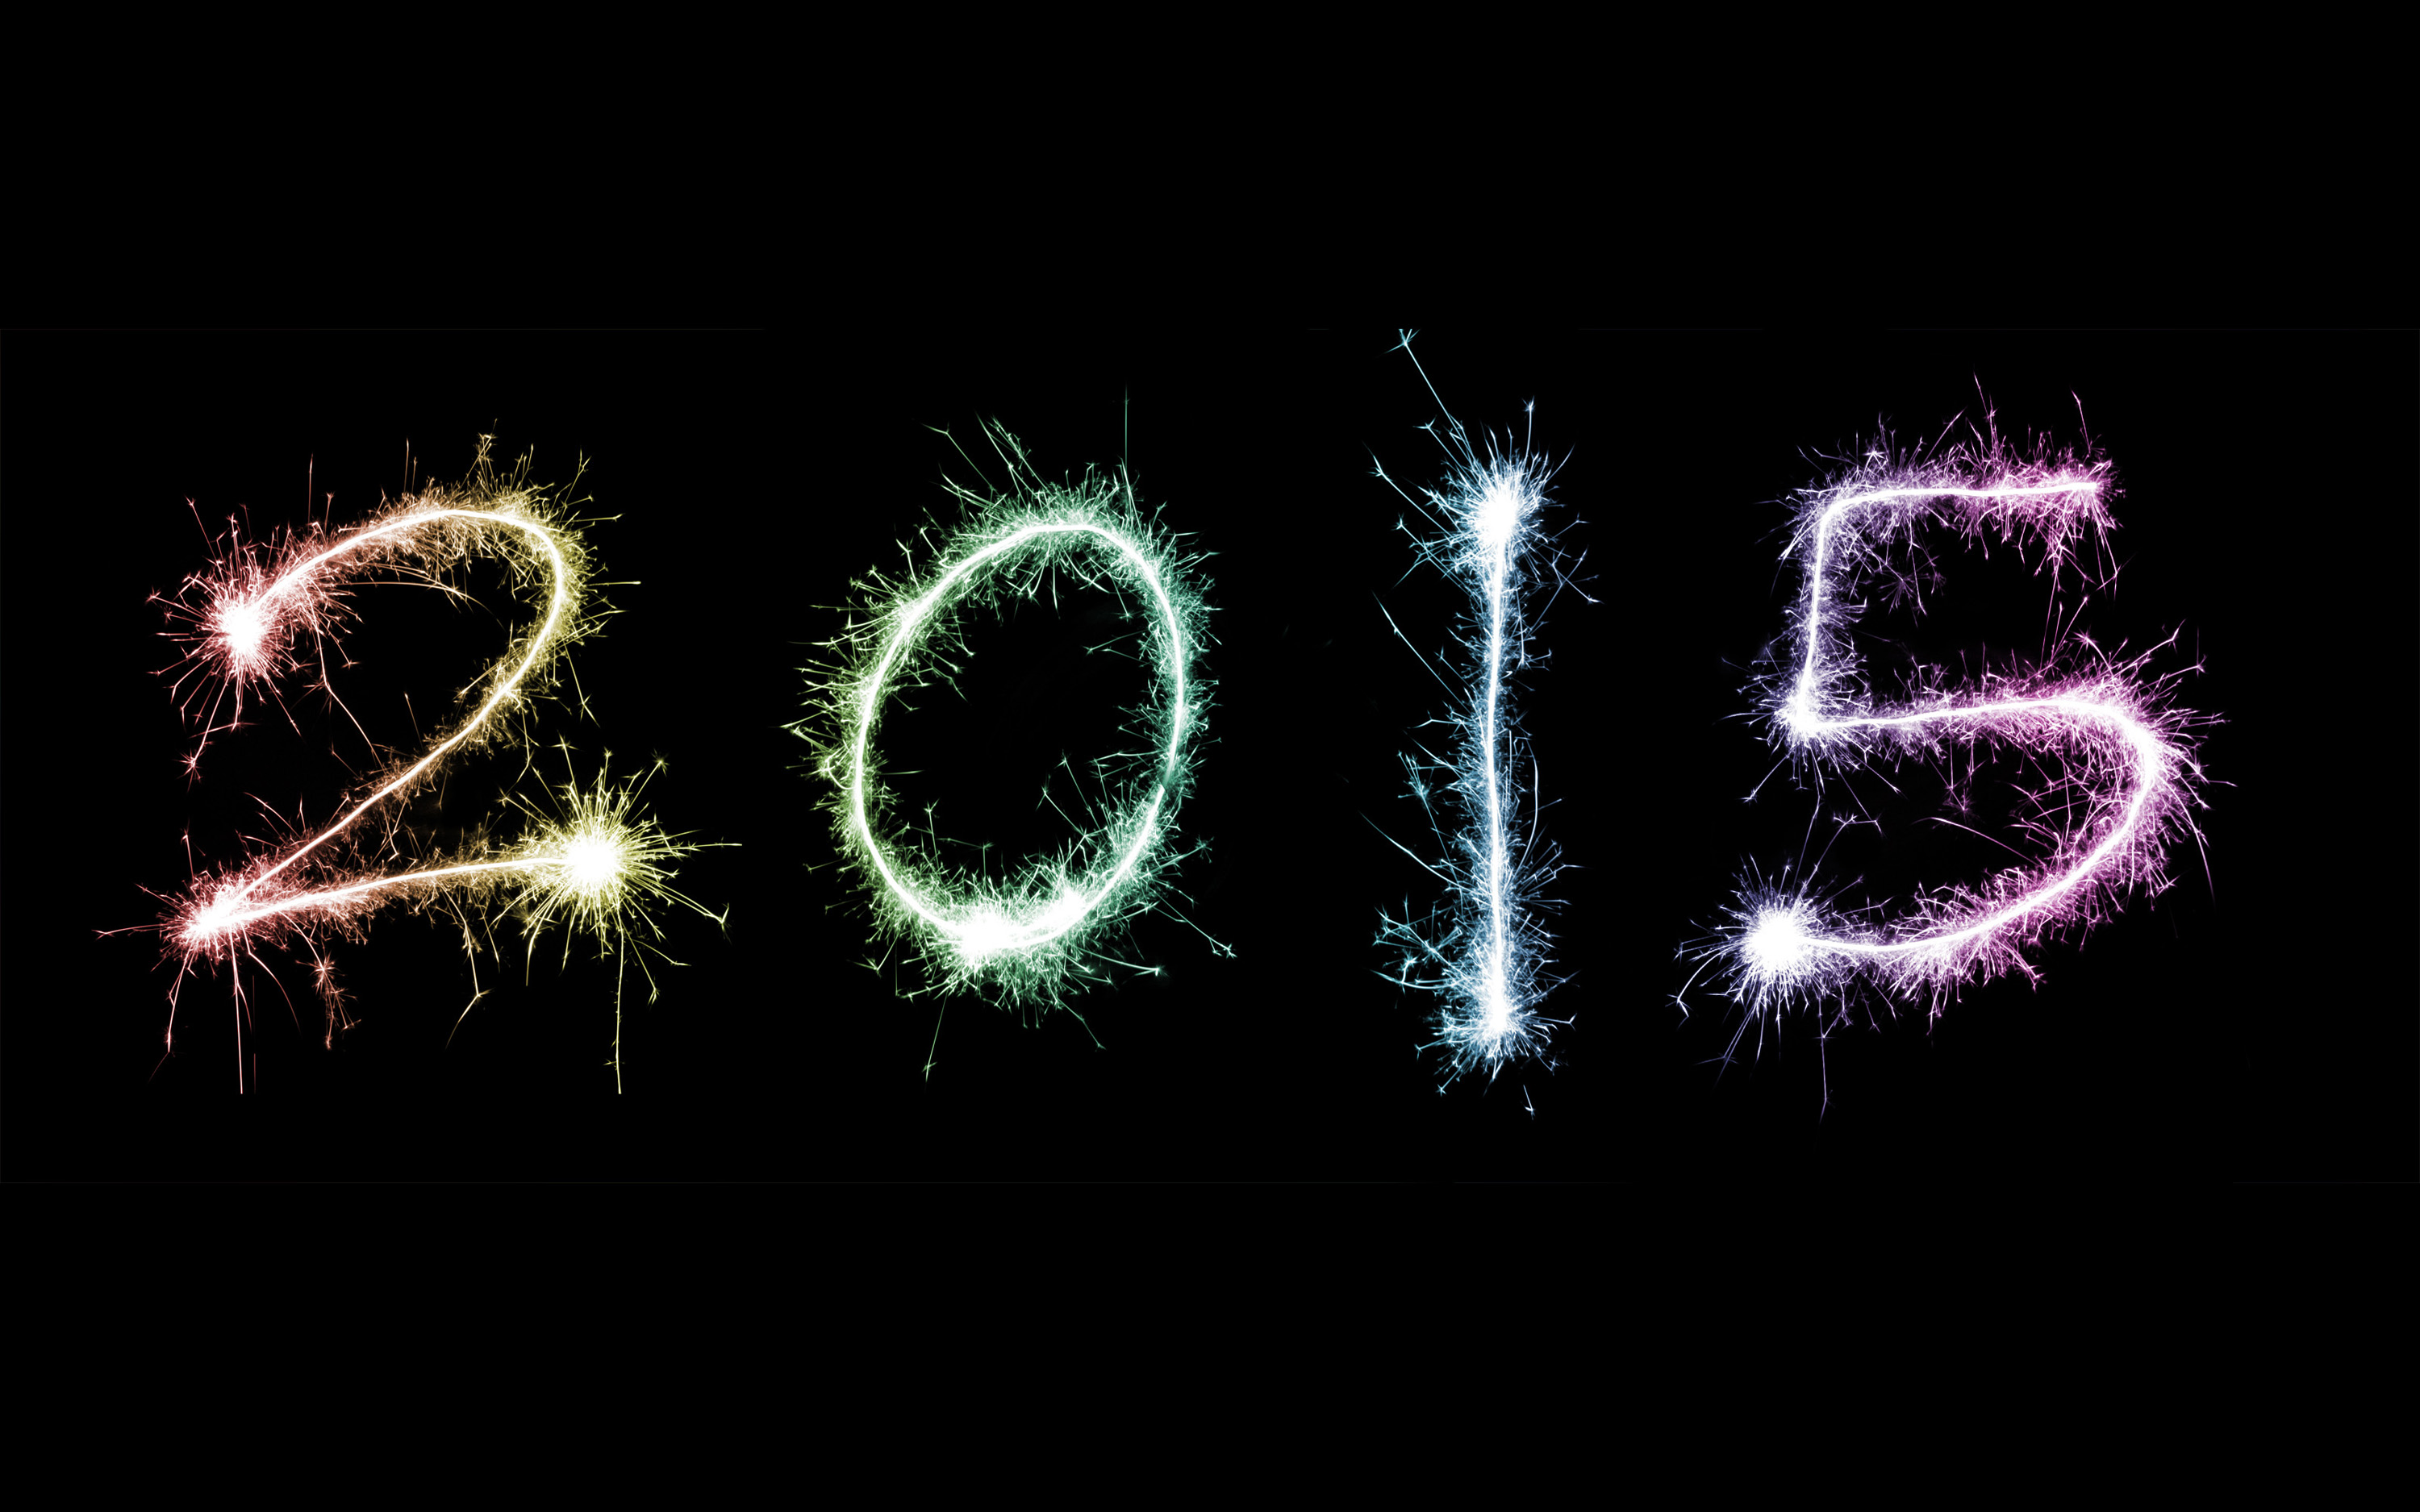 Things to watch for in 2015